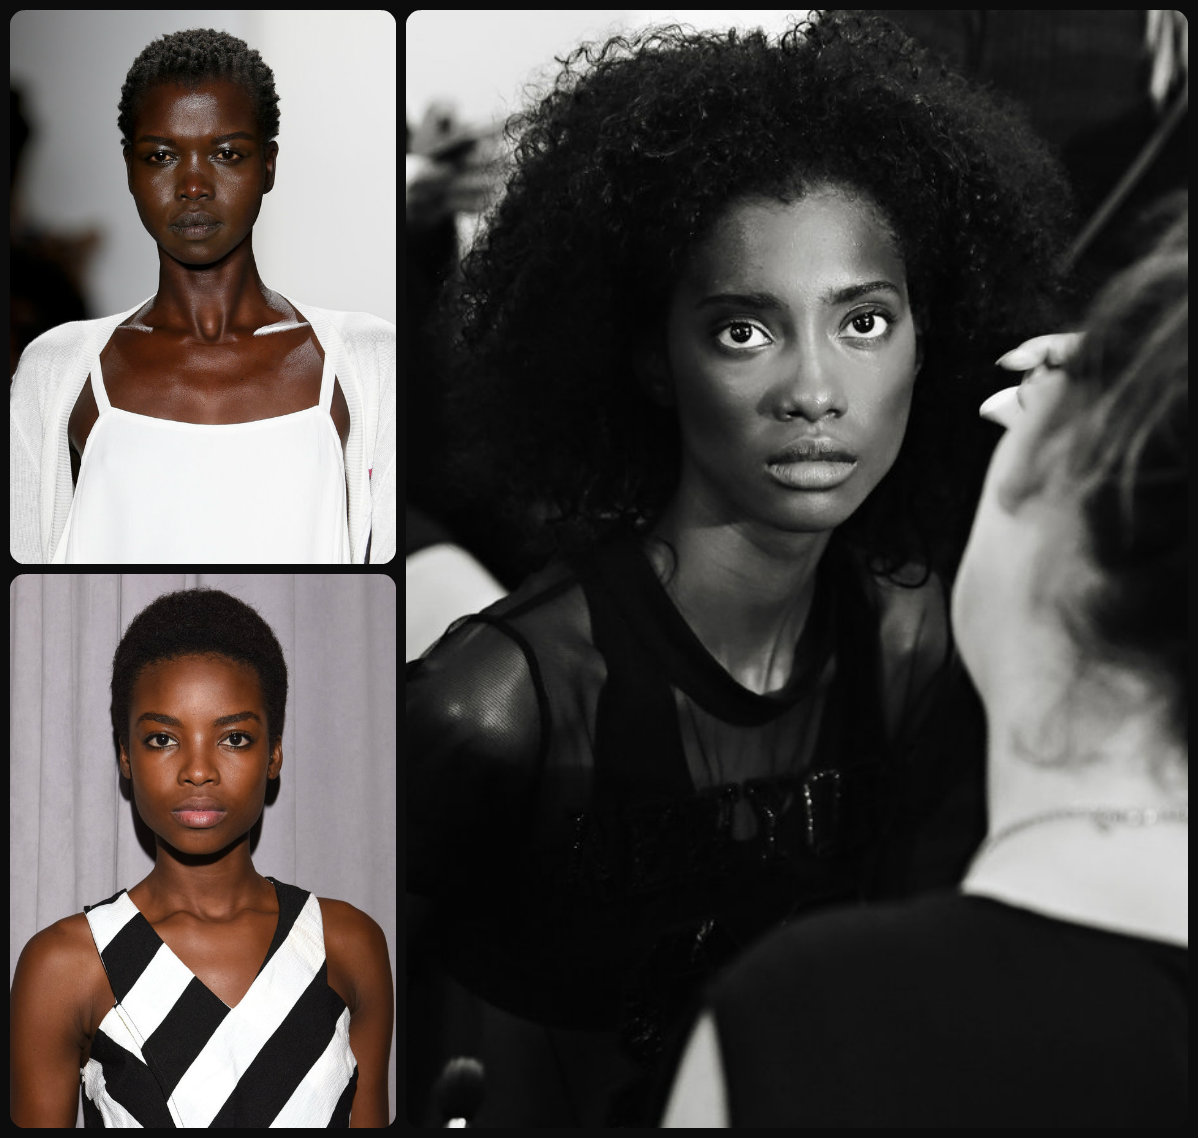 Afro hairstyles from NYFW SS16